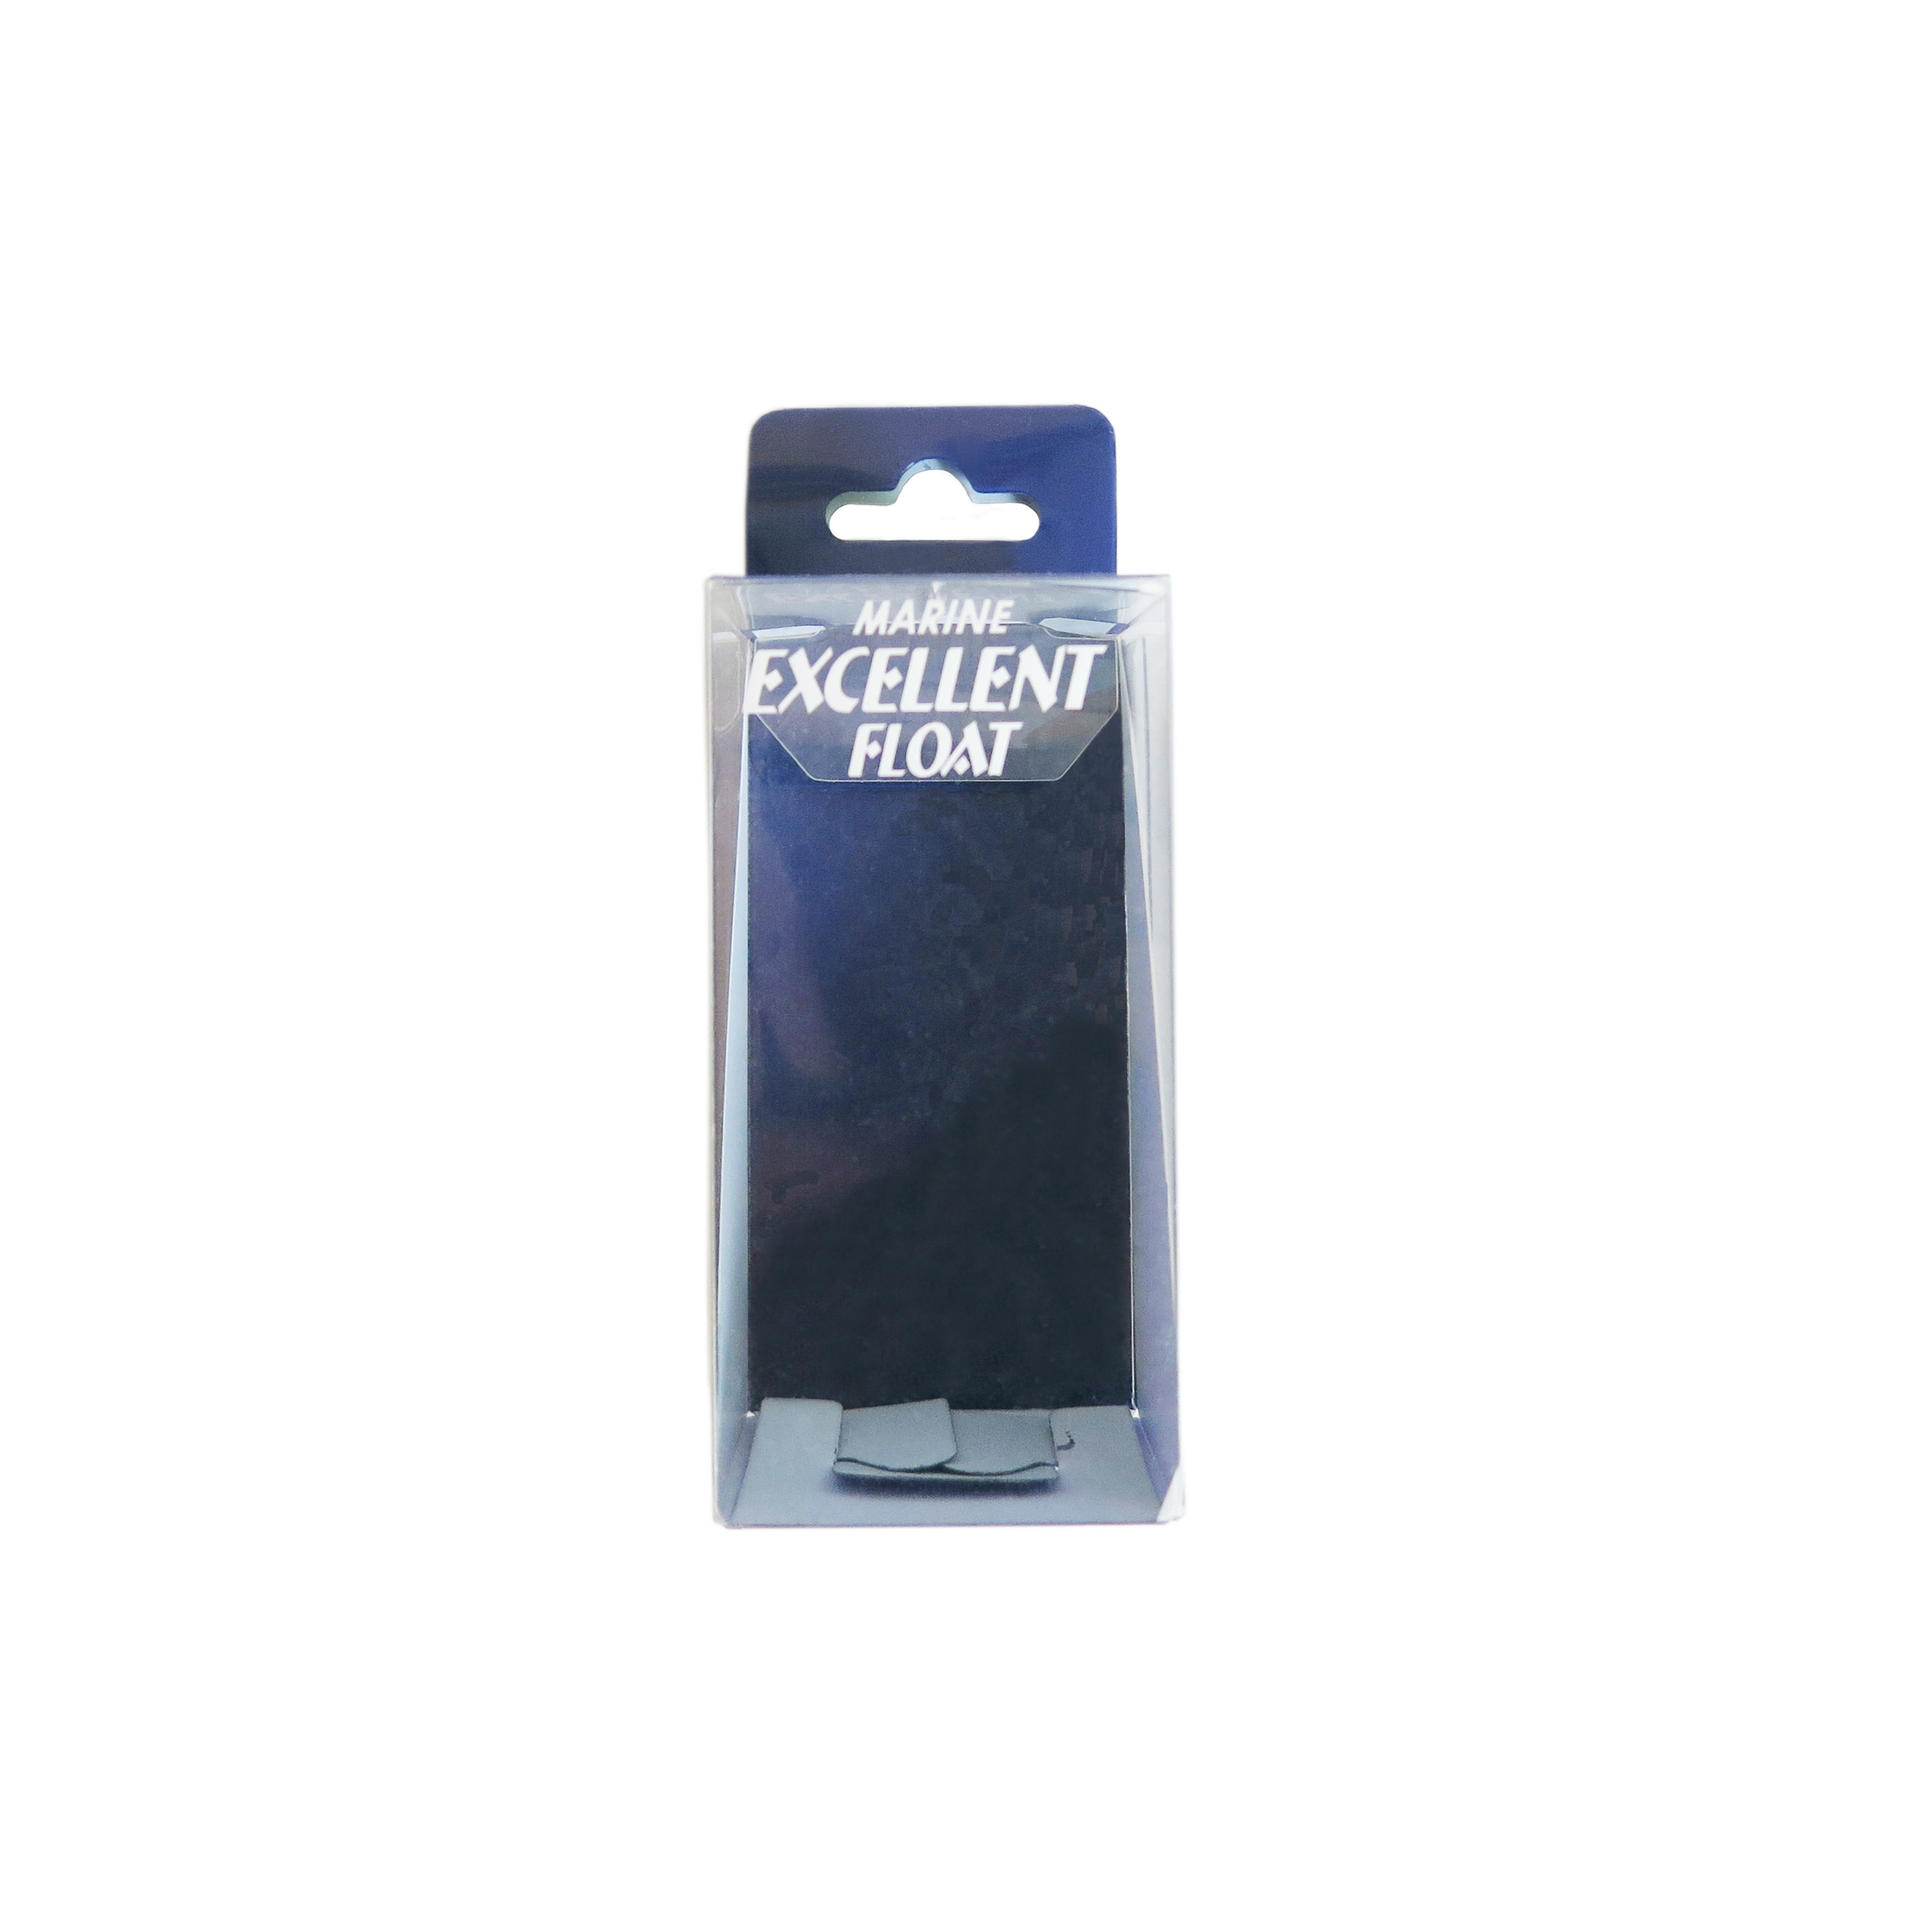 Small Combination Tuck-End & Lock End Closure Plastic Retail Packaging w/ Hanger Tab